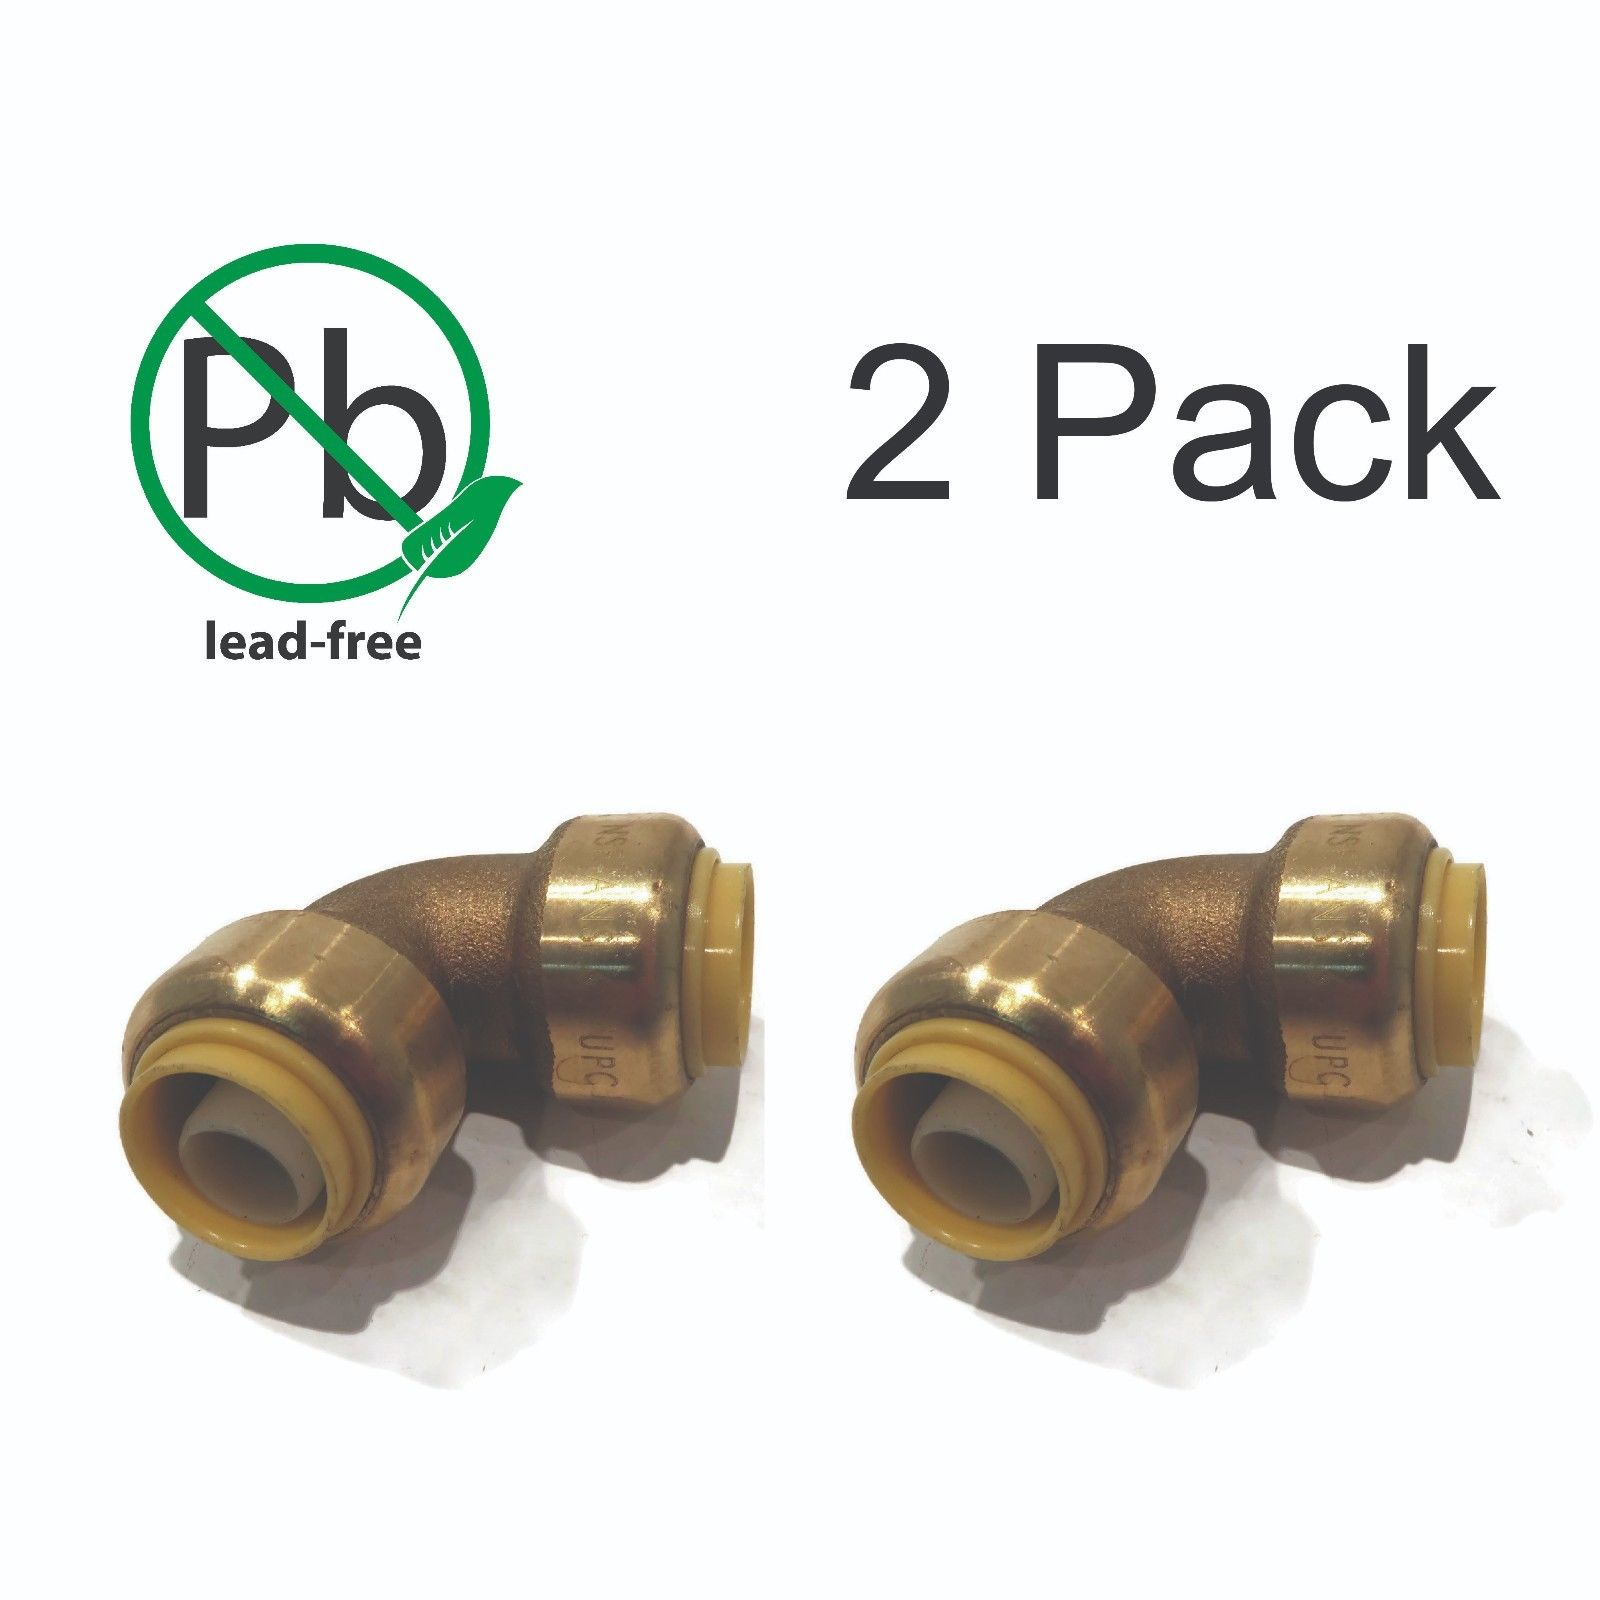 "(2) New 1/2"" Shark Bite Style Push-to-Connect 90° LEAD FREE BRASS ELBOWS Fitting"